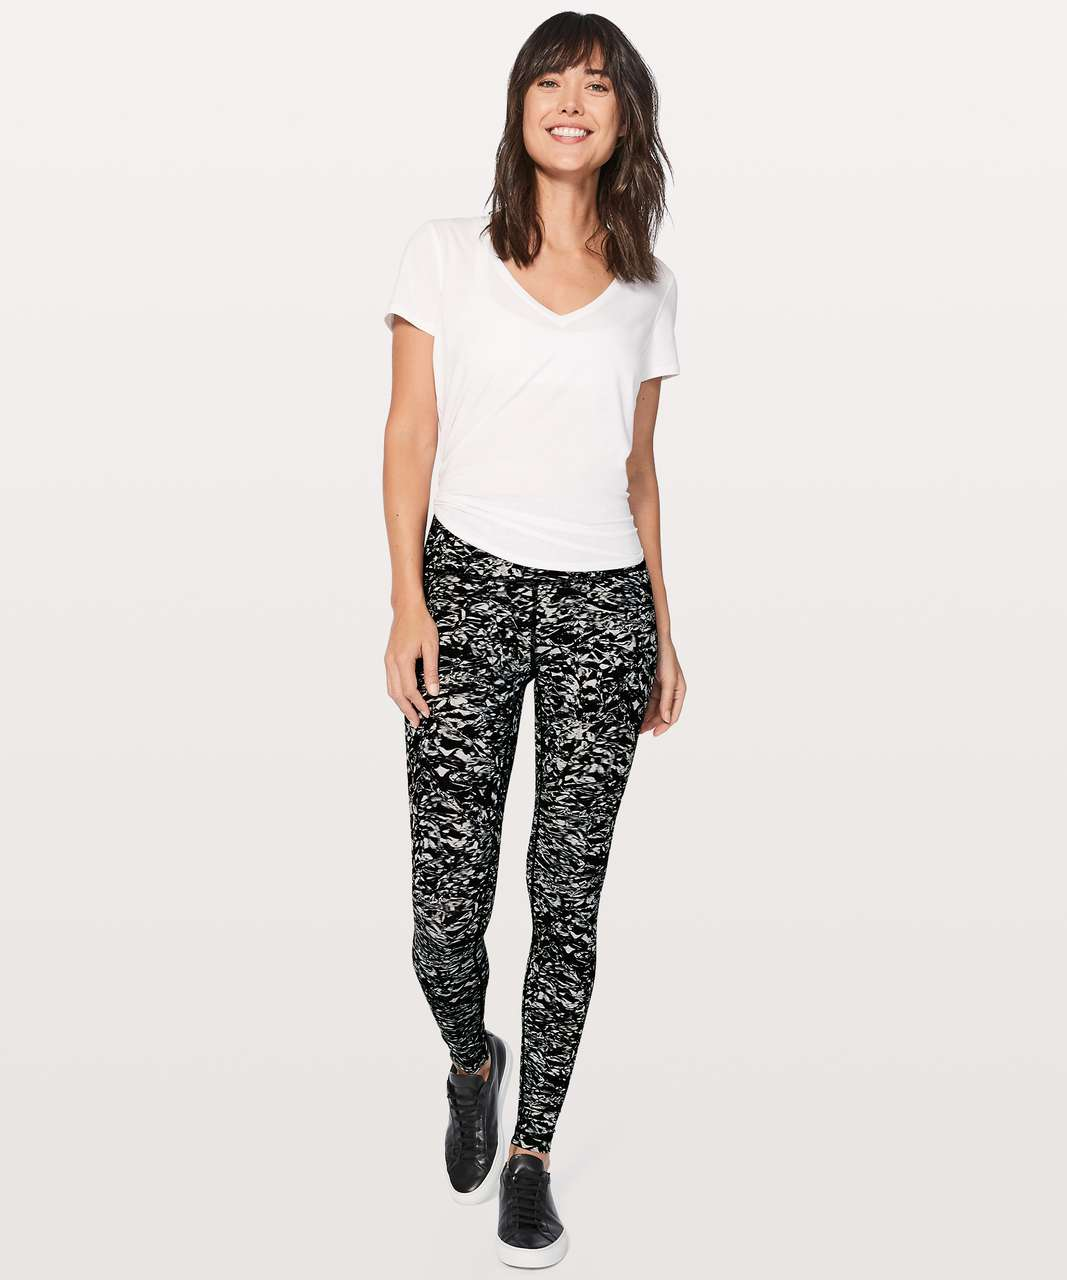 "Lululemon Wunder Under Hi-Rise Tight 28"" - Liquid Platinum Alpine White Multi"